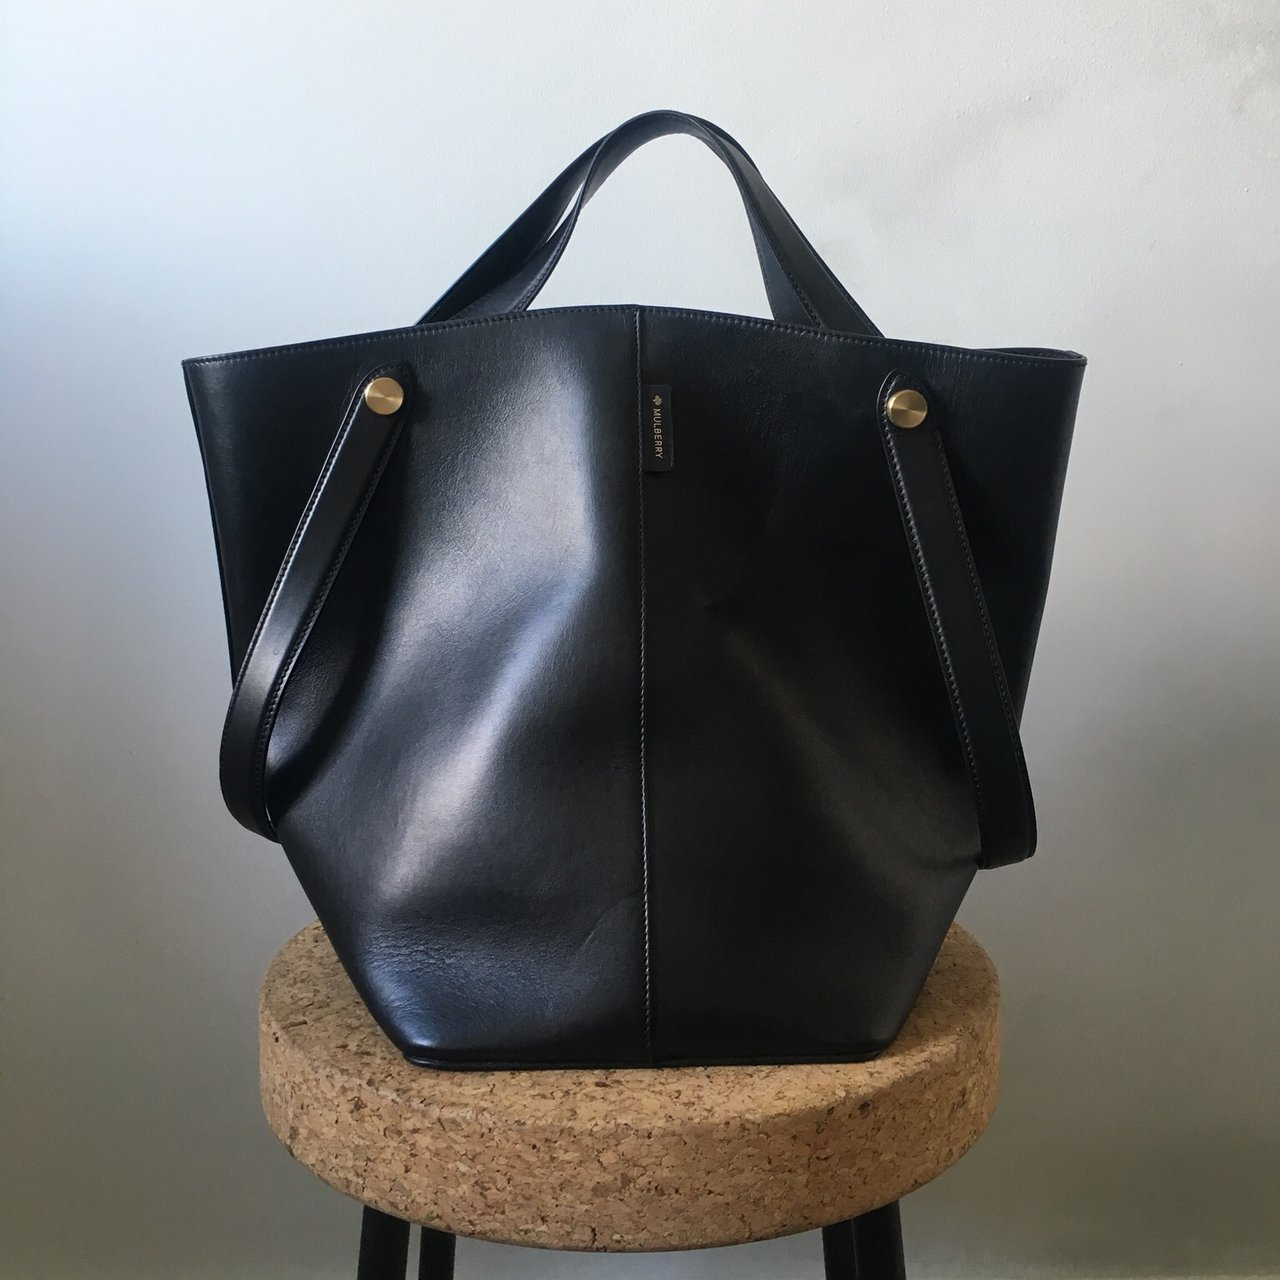 888847afc3 Mulberry  Kite  tote bag in black calf leather. The bag has - Depop